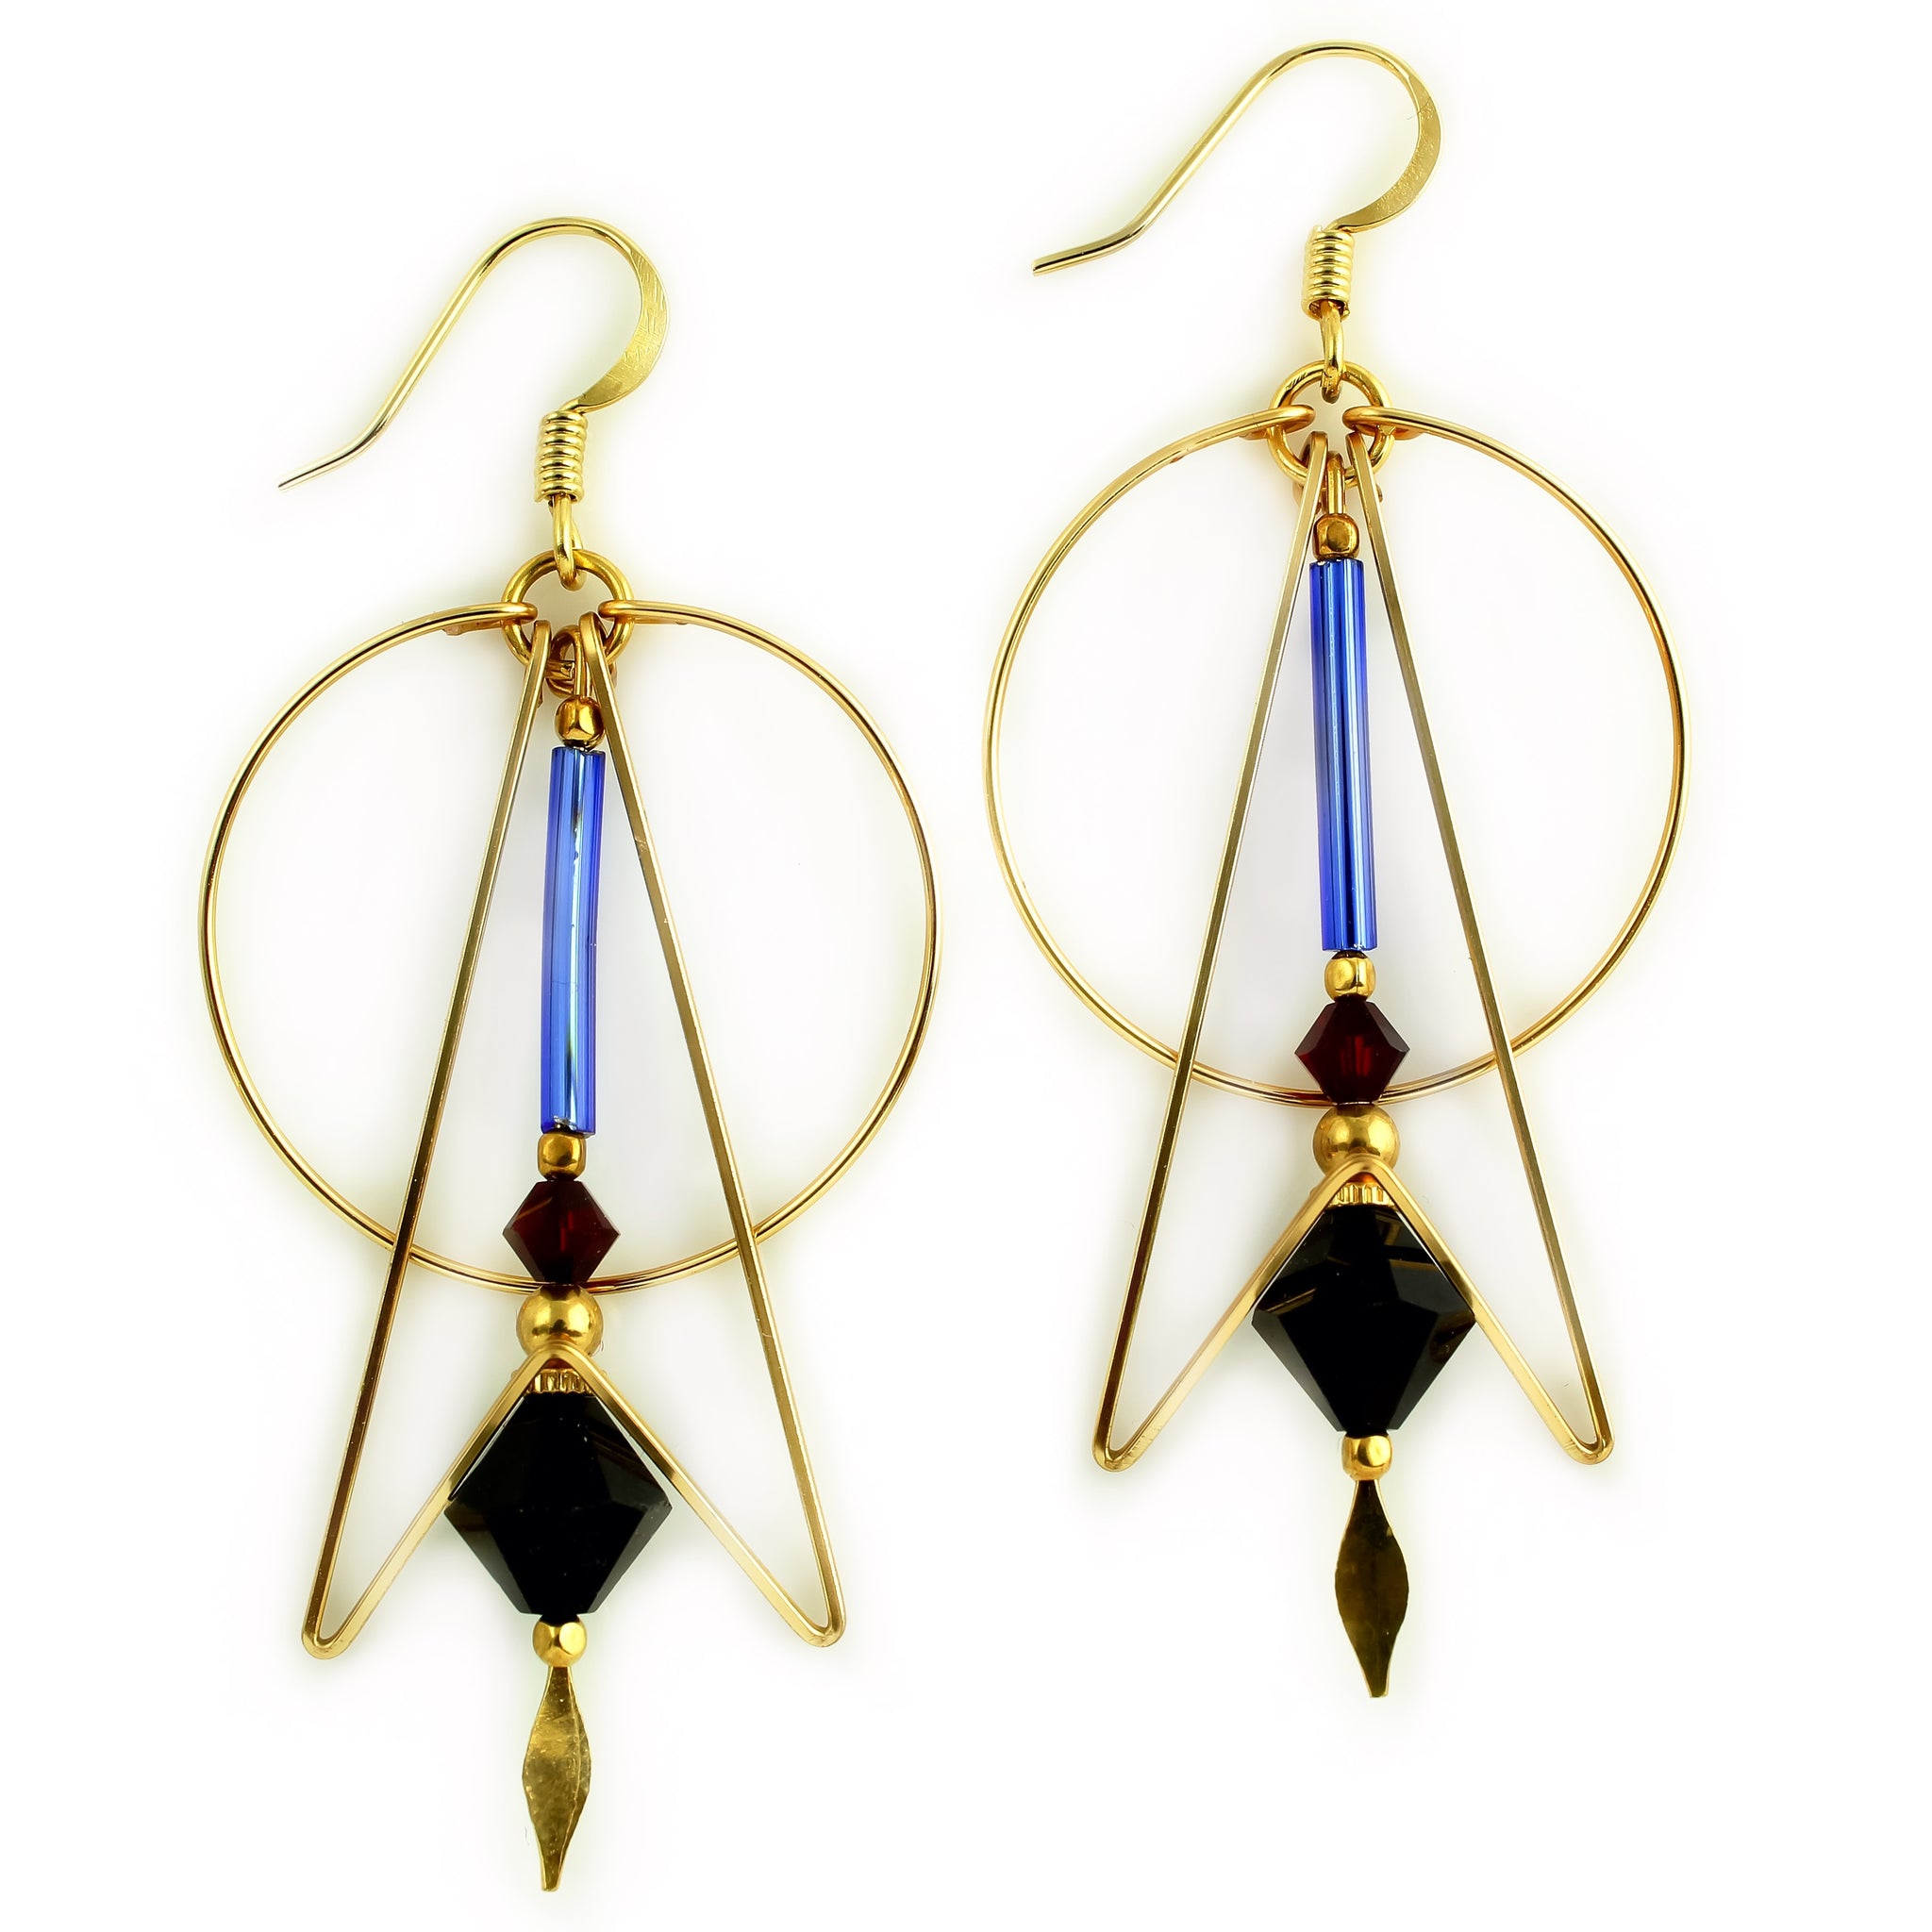 Art Deco Earrings Harpstone Jewelry Harpstone